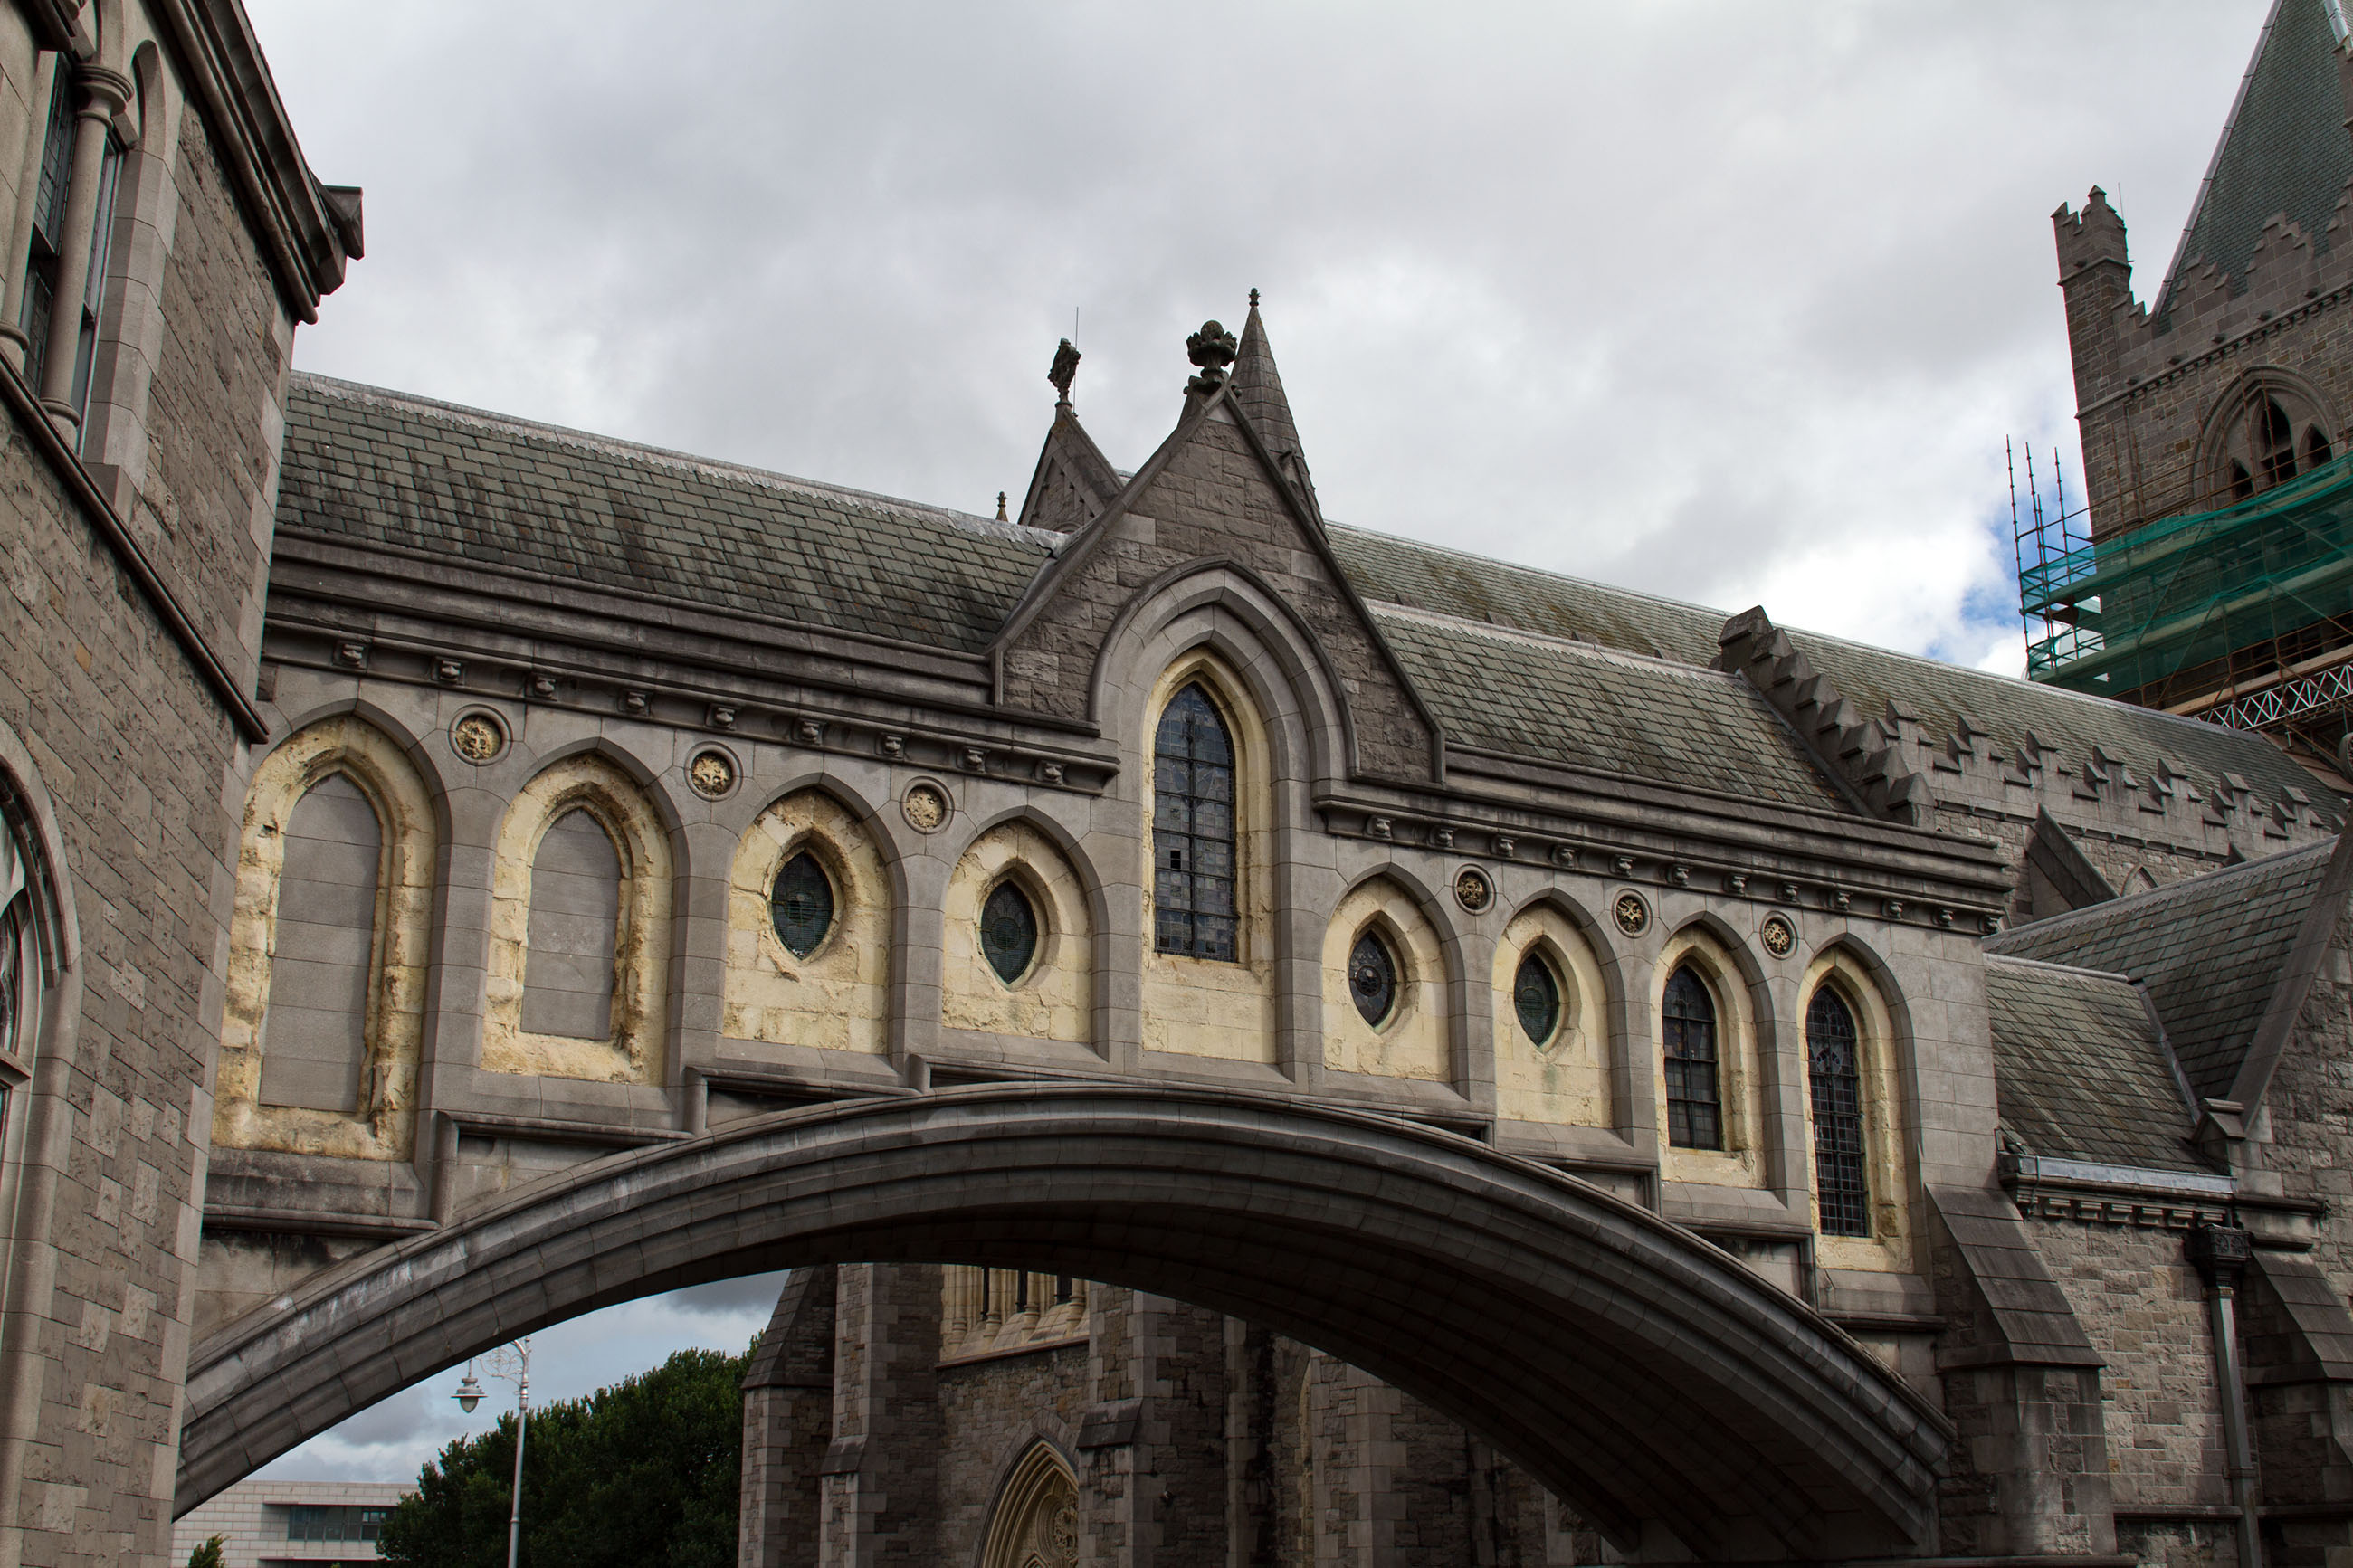 Christ Church Cathedral, Ancient, Landmark, Mass, Massive, HQ Photo